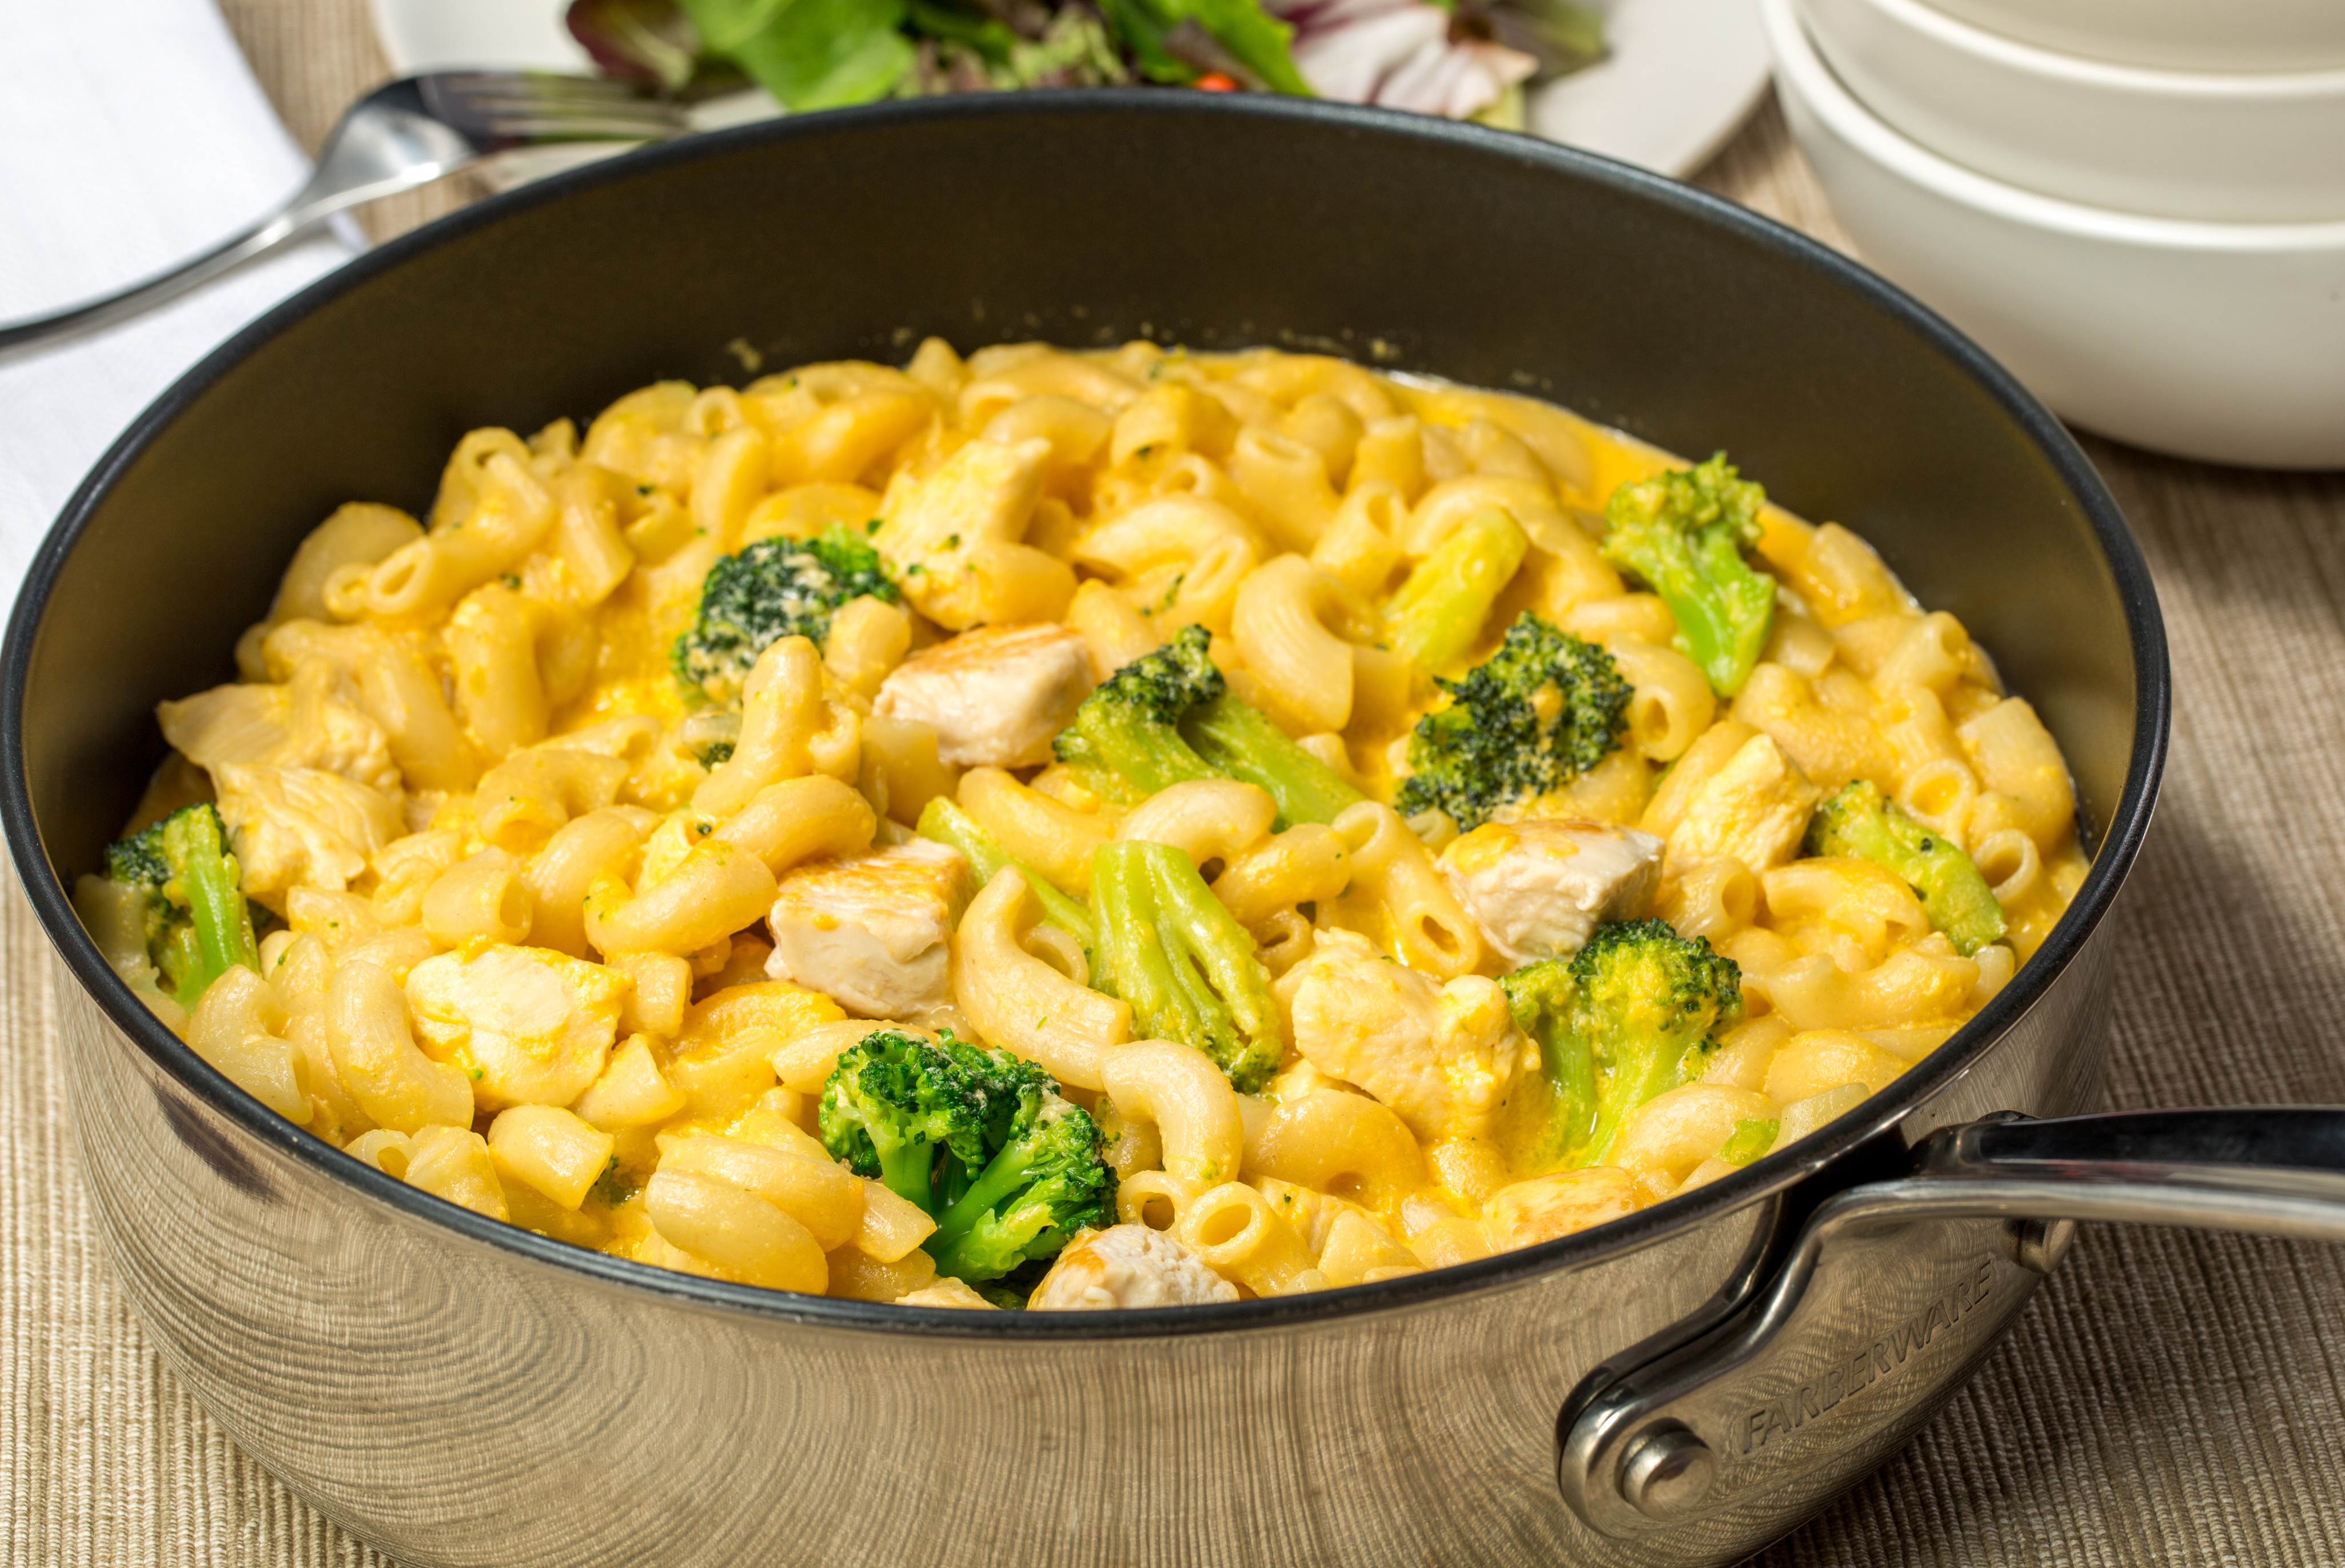 Mac And Cheese With Chicken And Broccoli My Food And Family